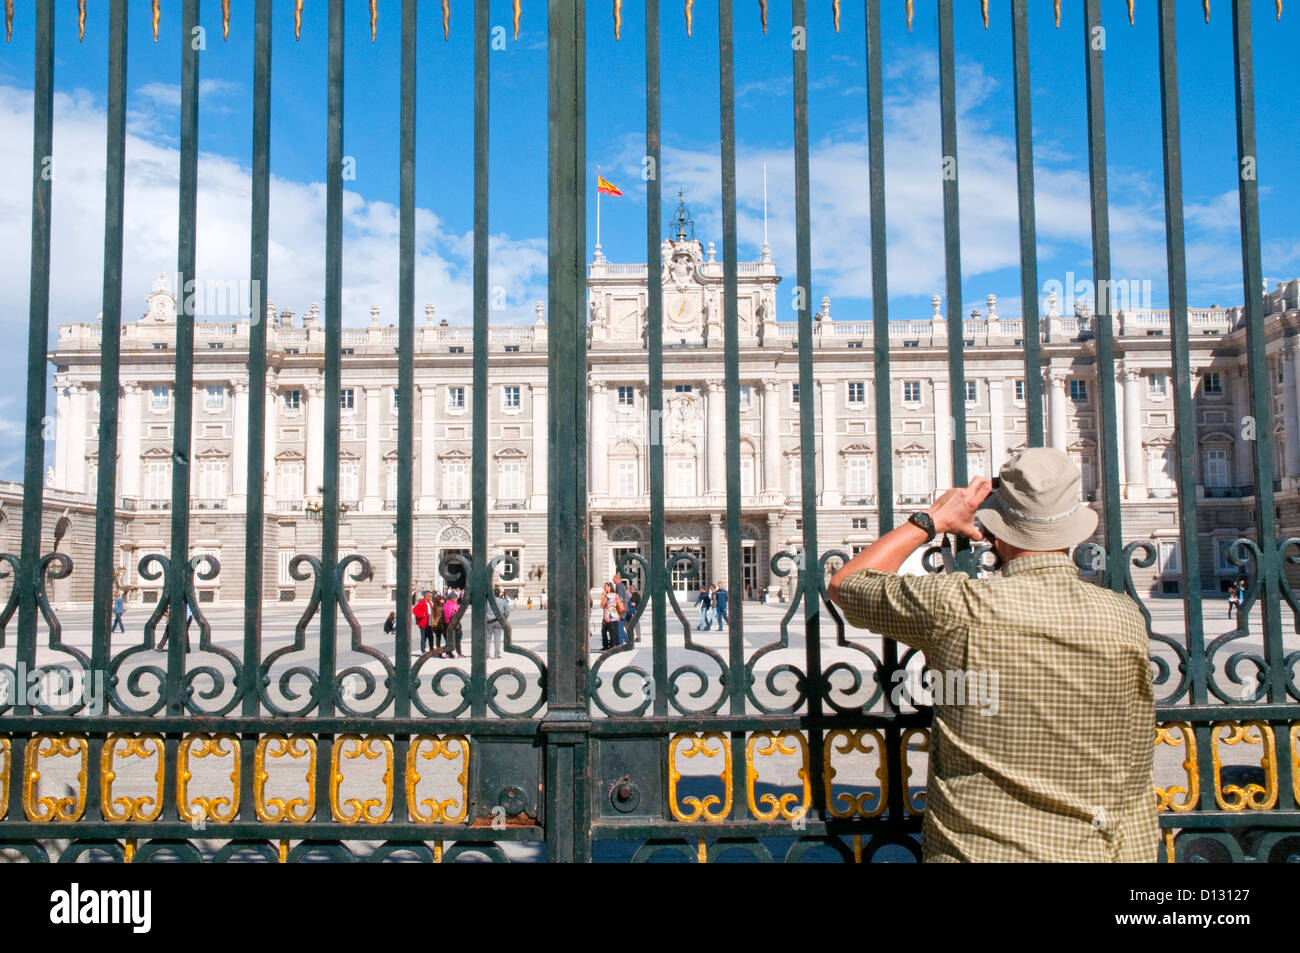 Man taking photos of the Royal Palace. Armeria Square, Madrid, Spain. - Stock Image